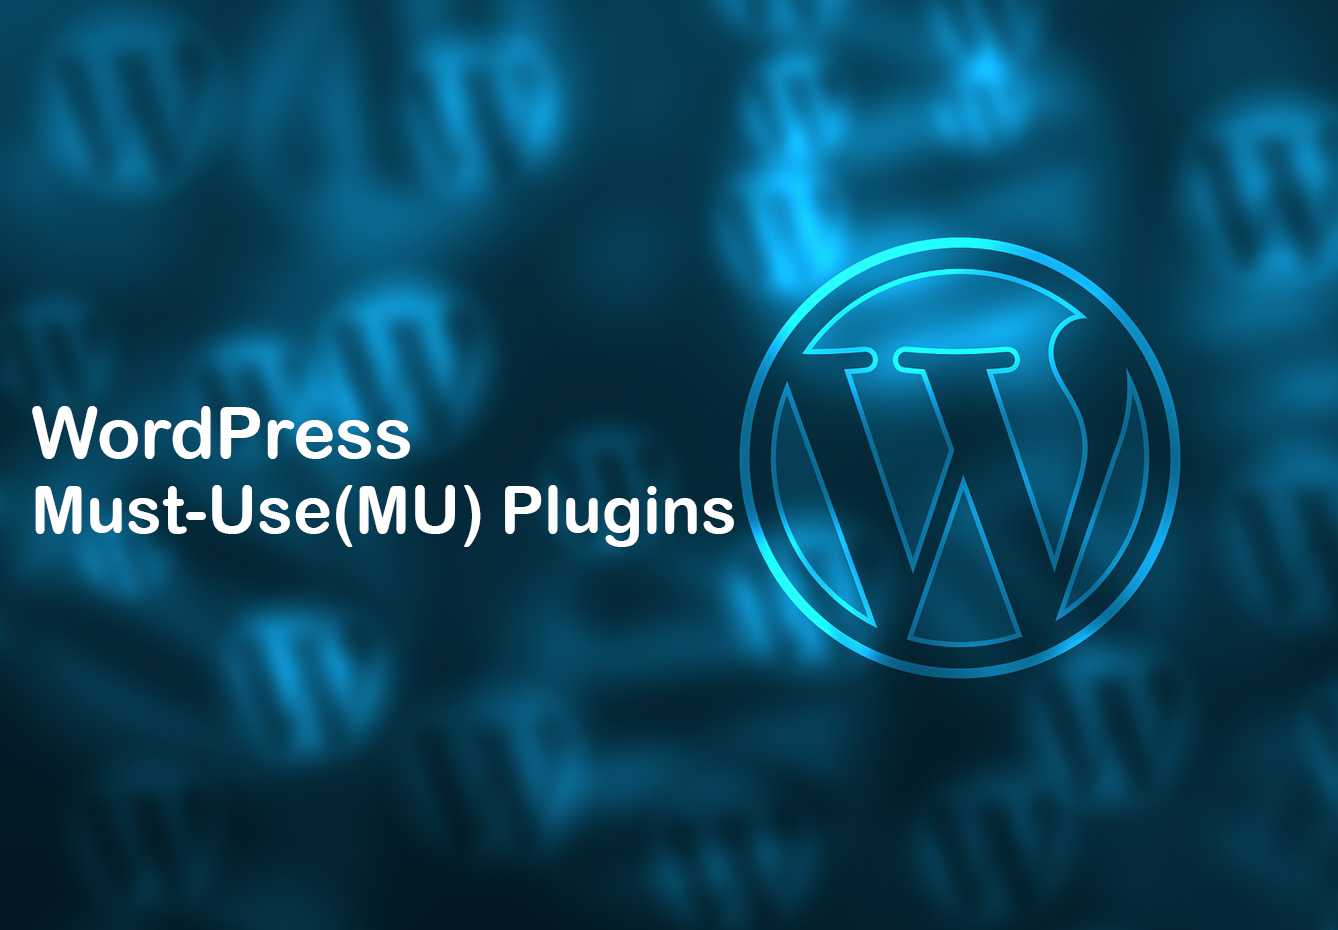 WordPress-must-use(MU)-plugins,Code Pixelz Media